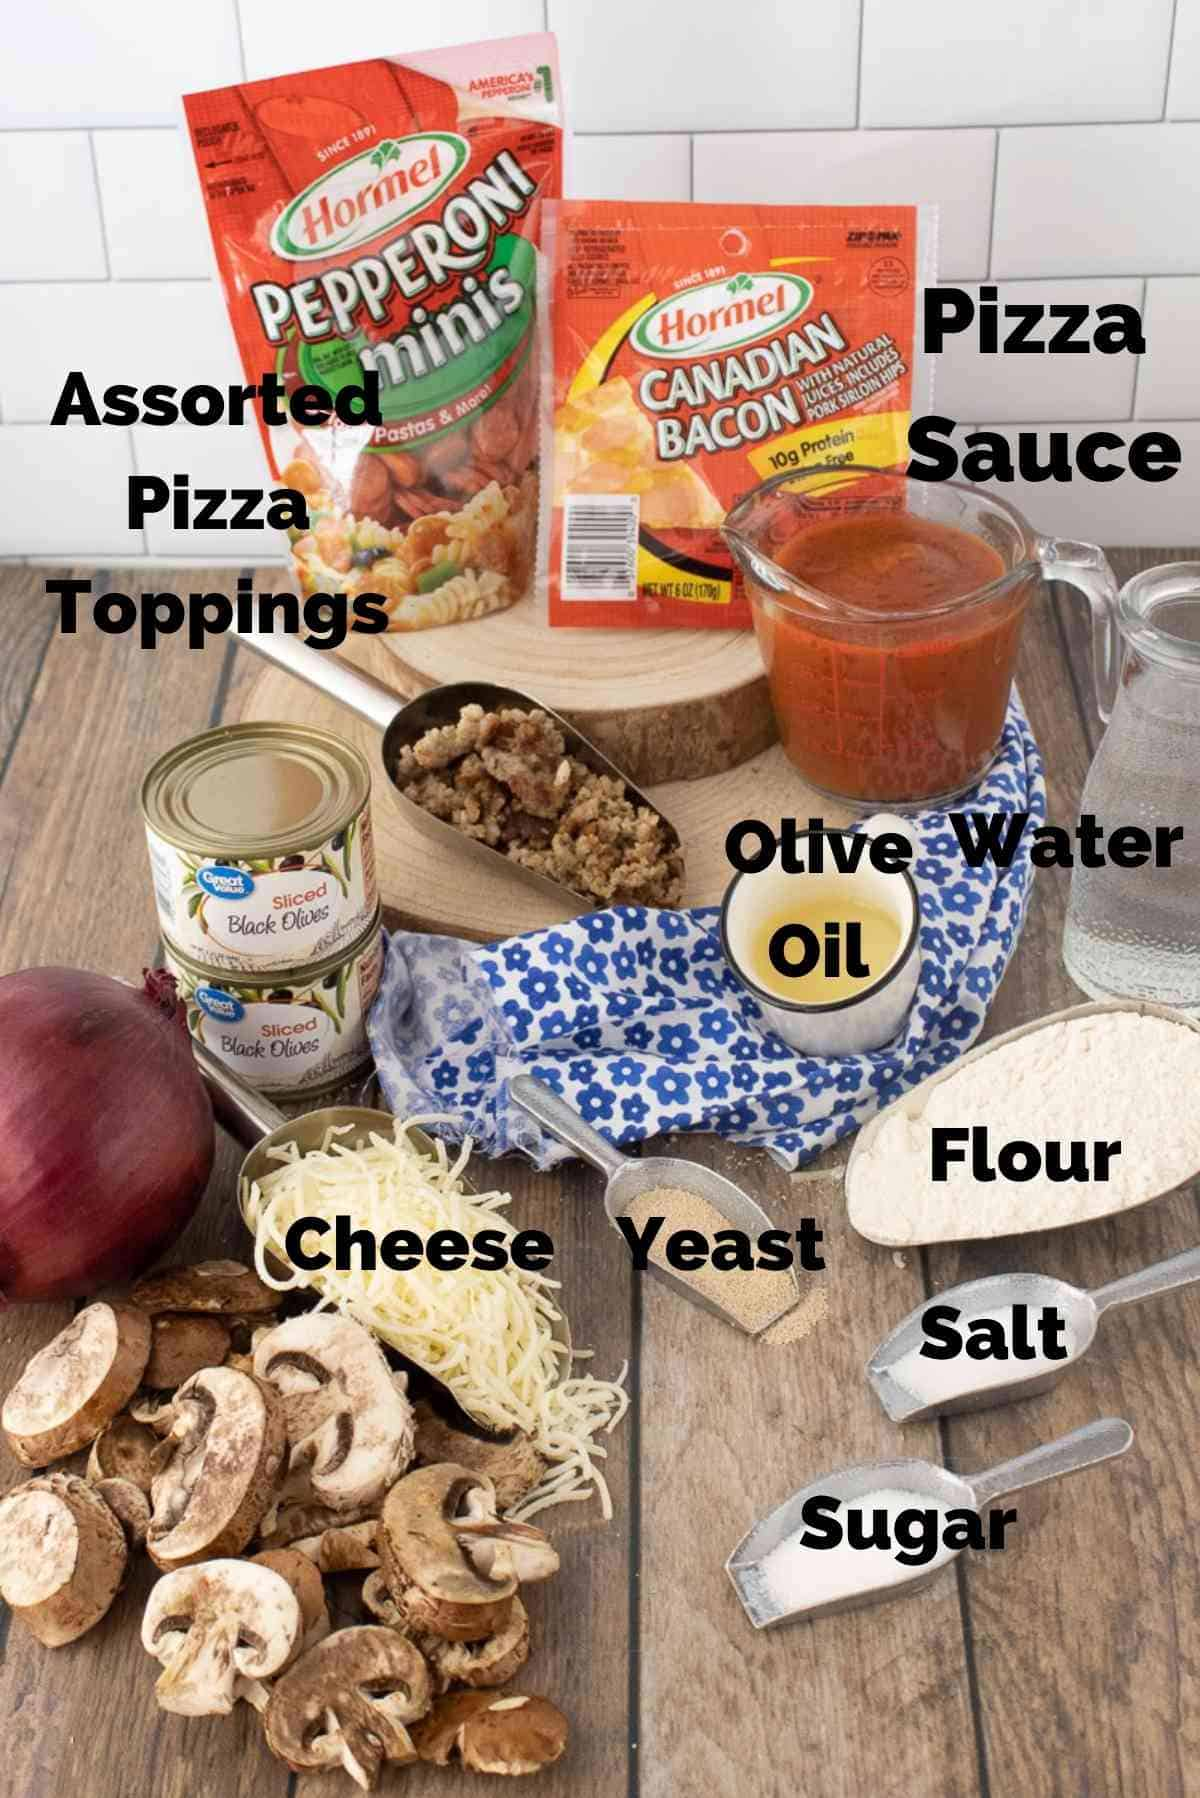 Ingredients needed for these pizza rolls.